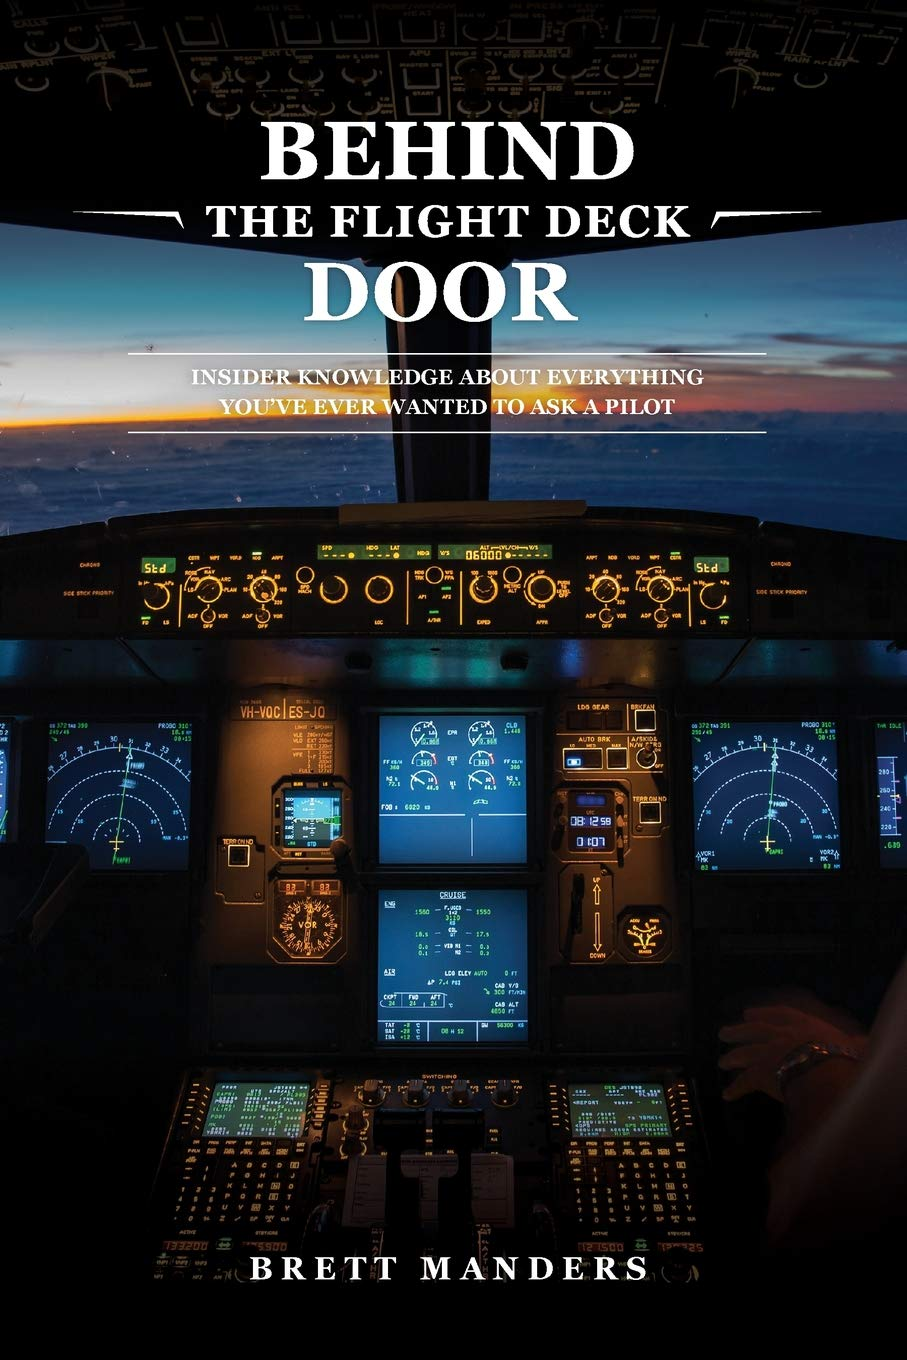 Behind the Flight Deck Door - Insider Knowledge About Everything You've Ever Wanted to Ask a Pilot by Brett Manders